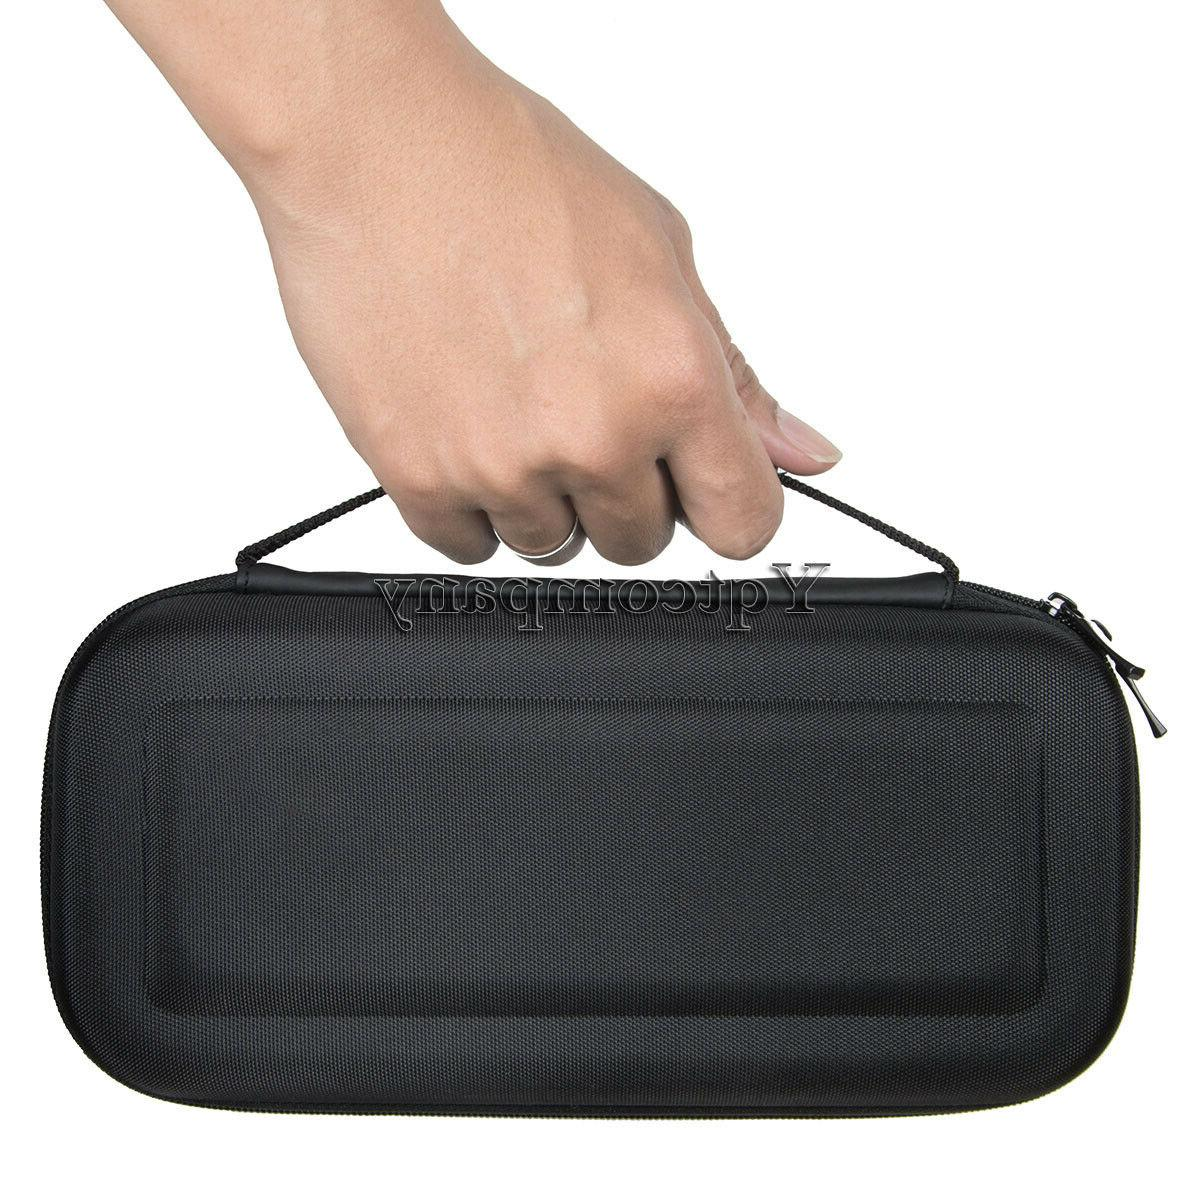 Shell Travel Carrying Case Protective Bag